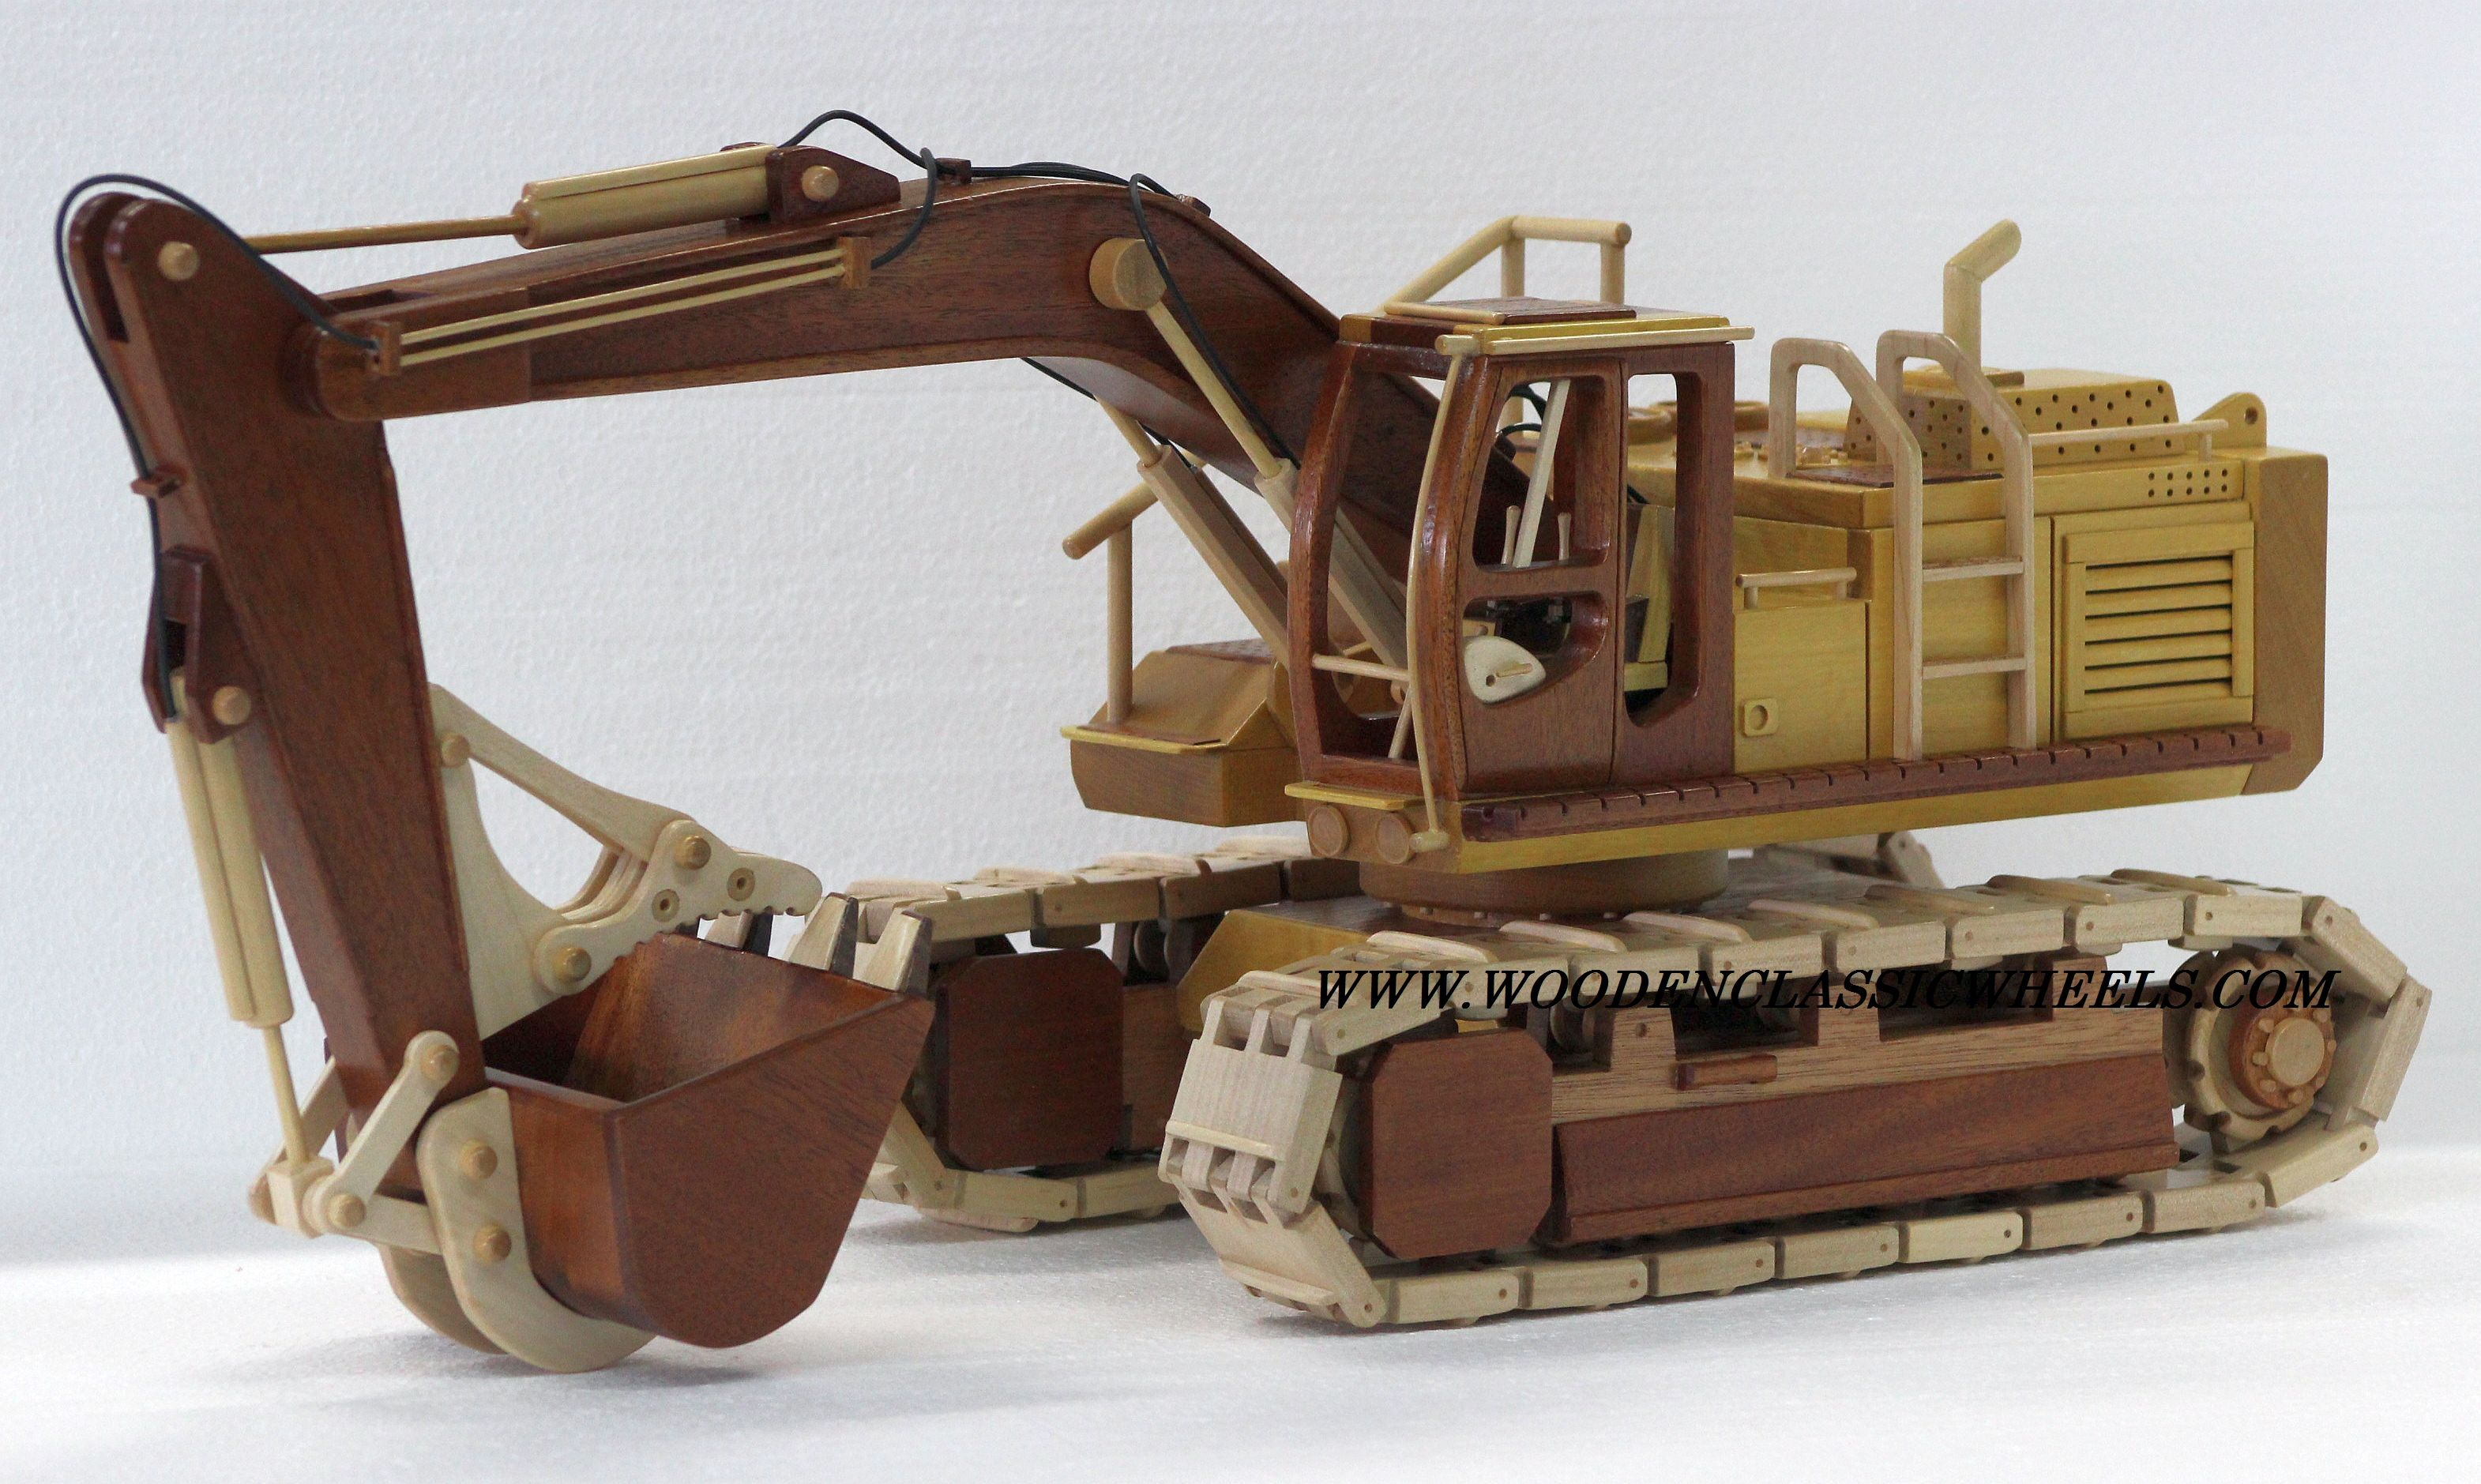 Custom Handmade Wooden model replicas